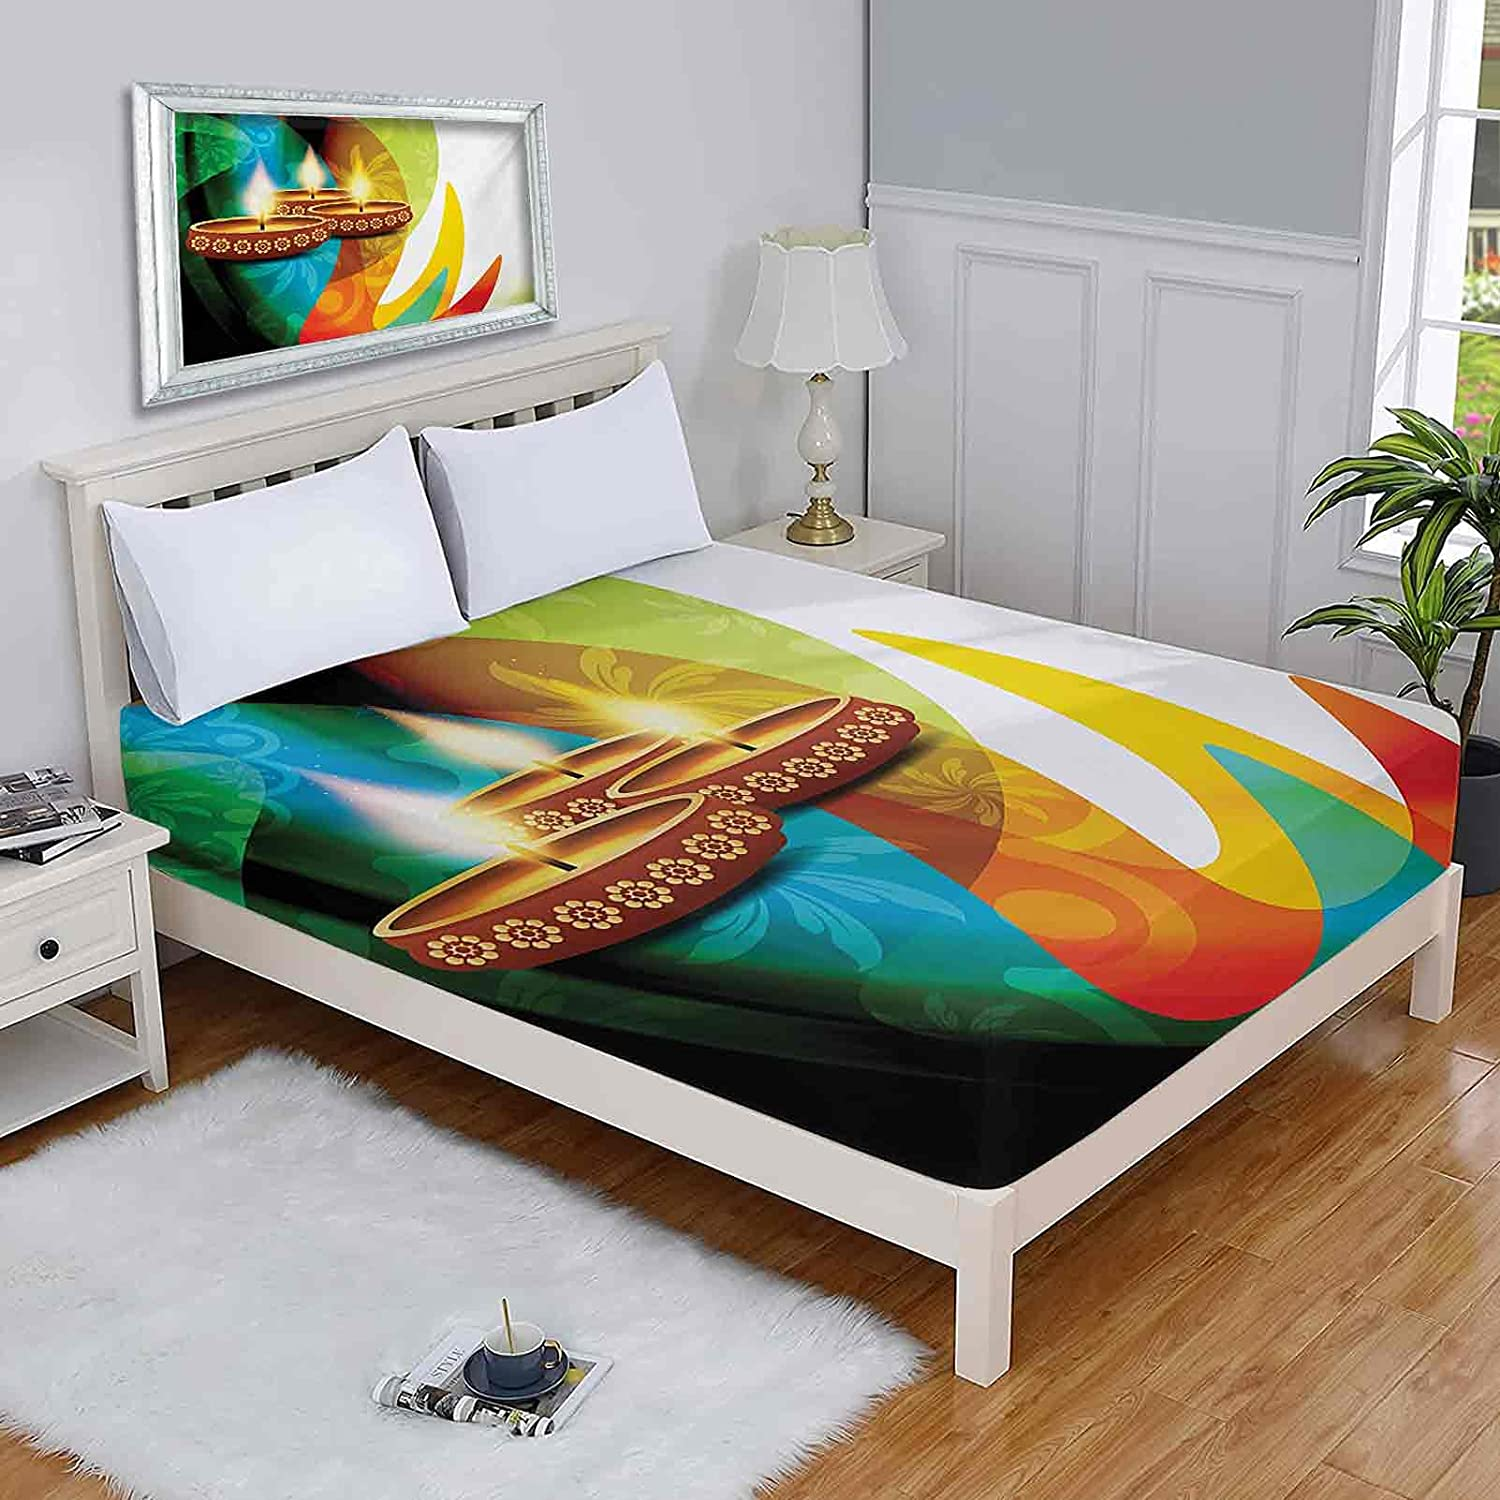 Diwali Full Mattress Clearance SALE Limited time Protector Detailed Colored Reservation Modern Rainbow